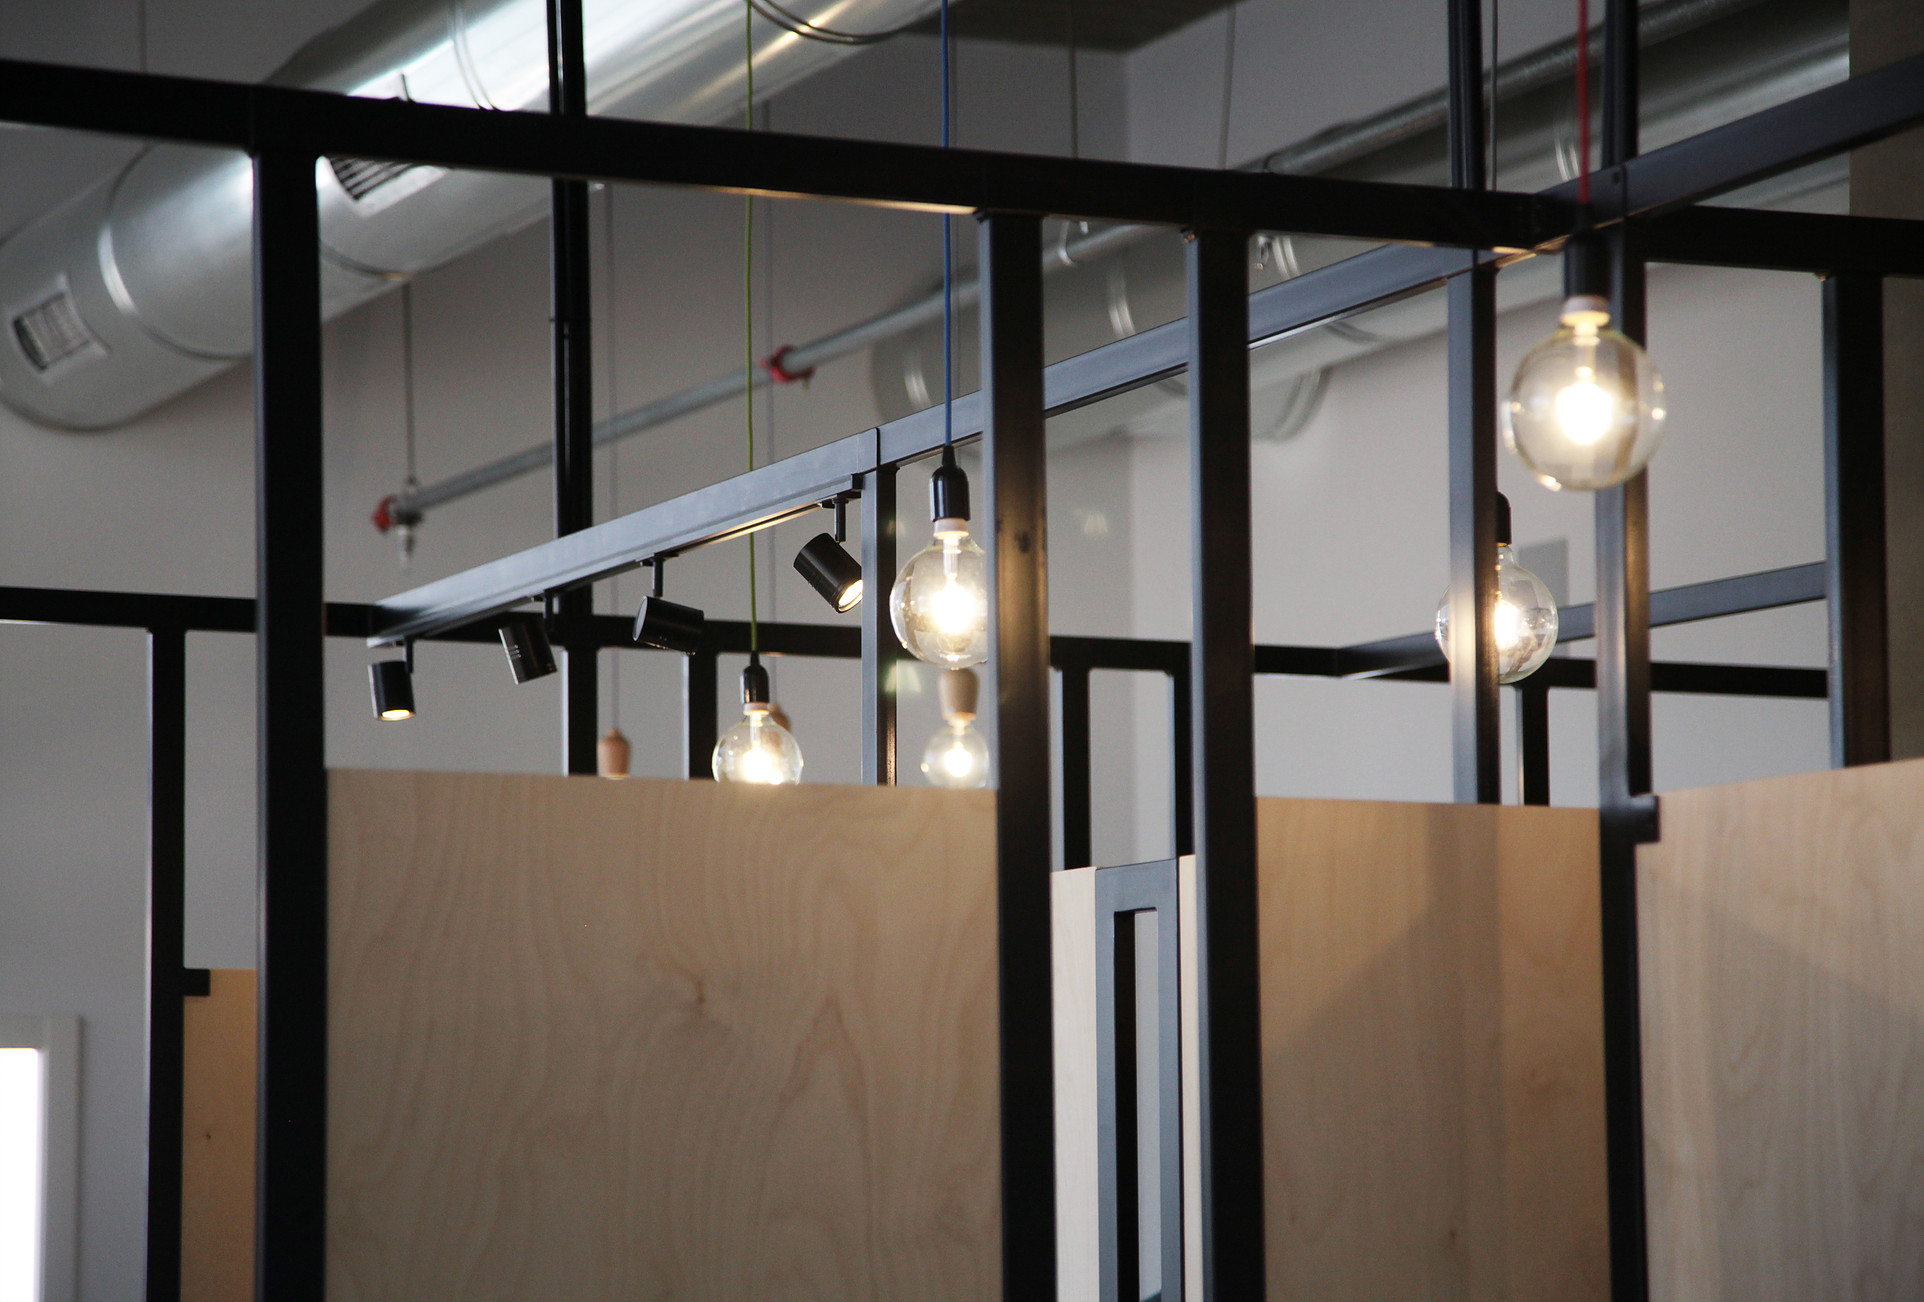 steel construction of wood dividers combined with lighting